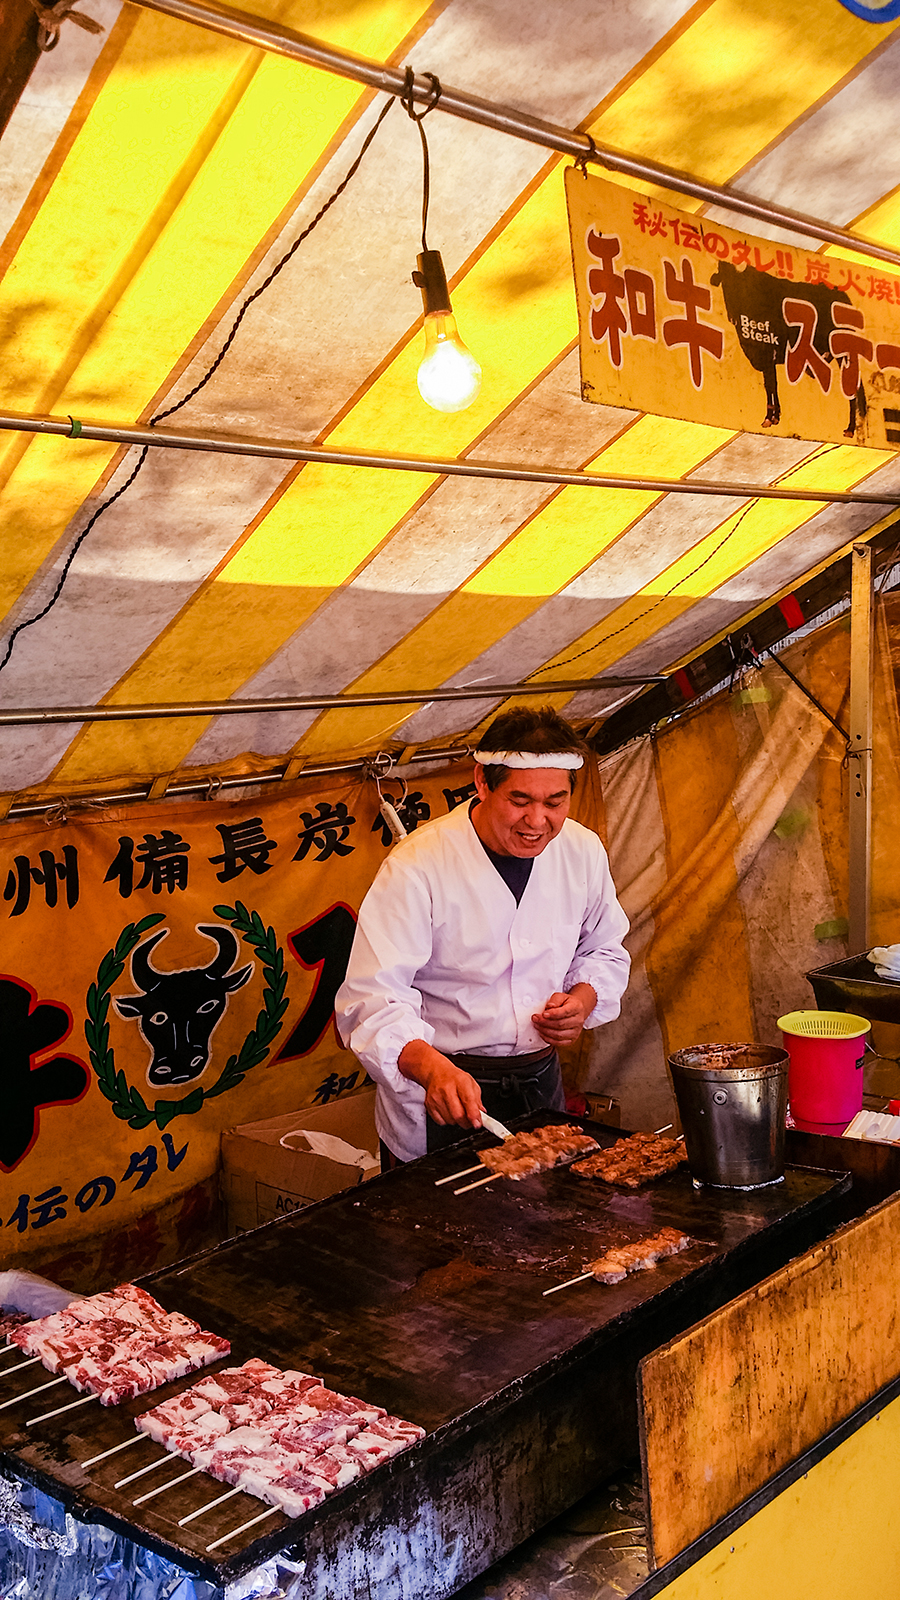 Wagyu Steak food stall at Fushimi Inari, Kyoto Japan.